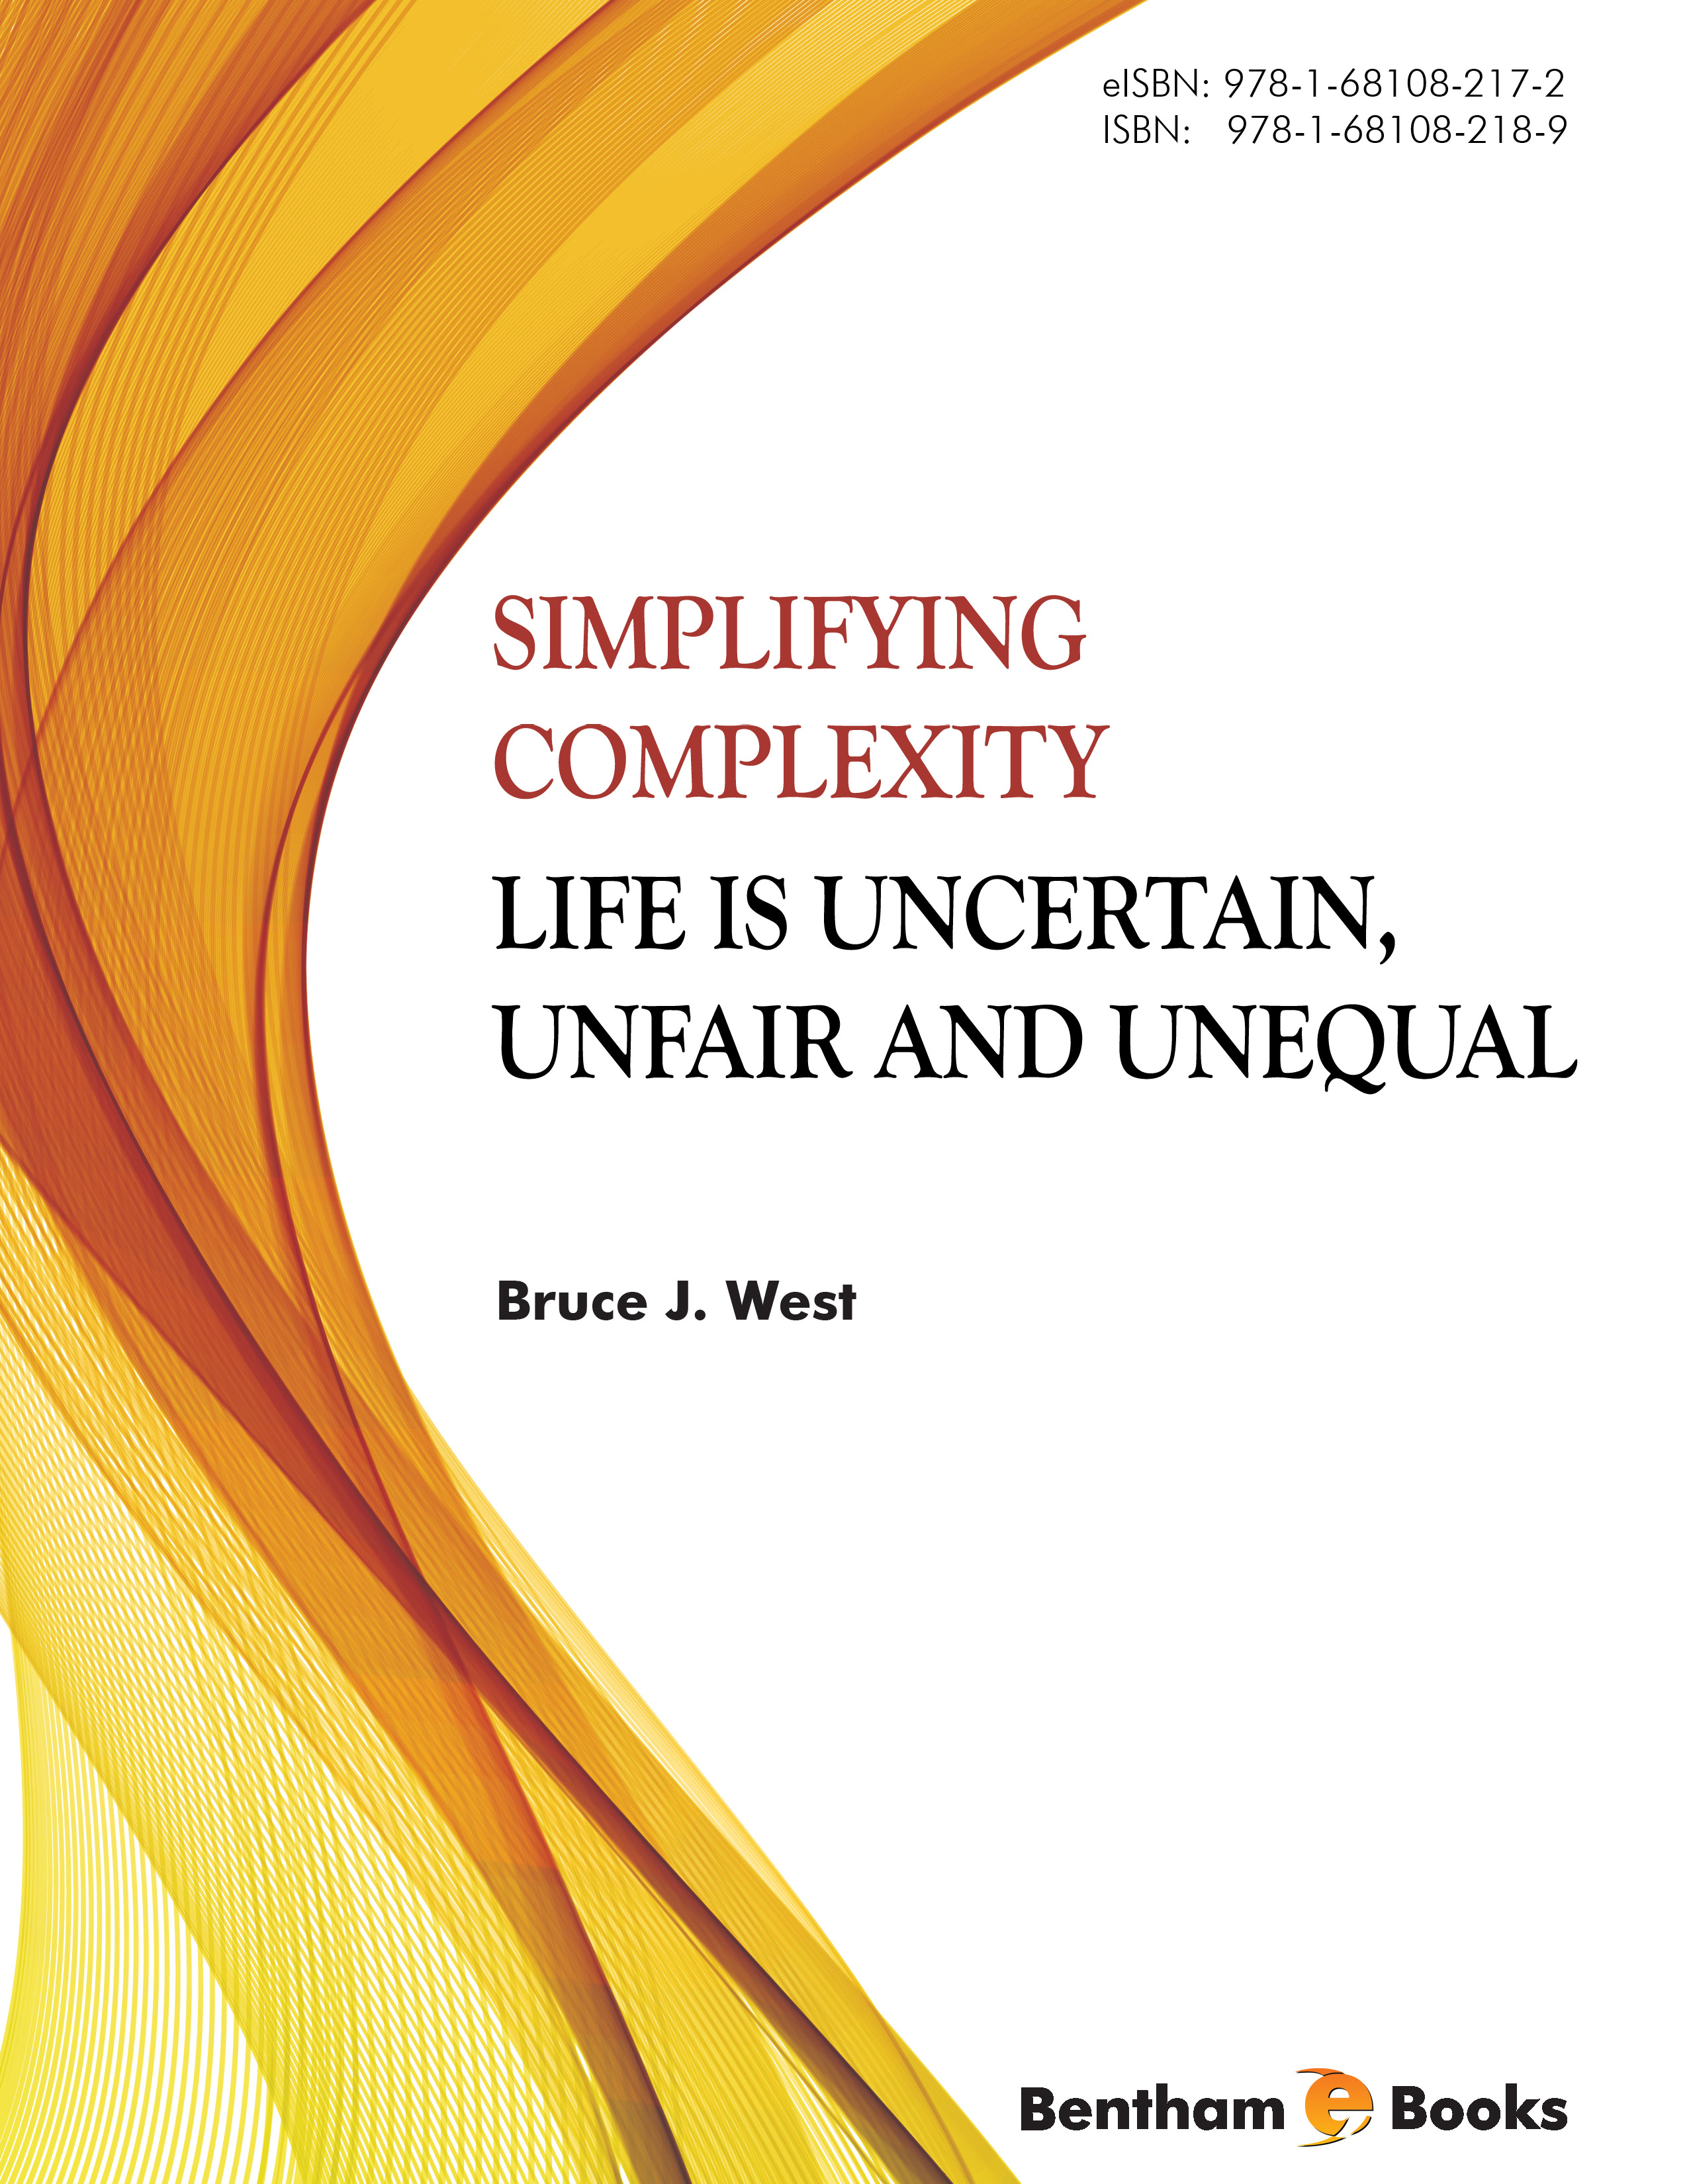 Simplifying Complexity: Life is Uncertain, Unfair and Unequal